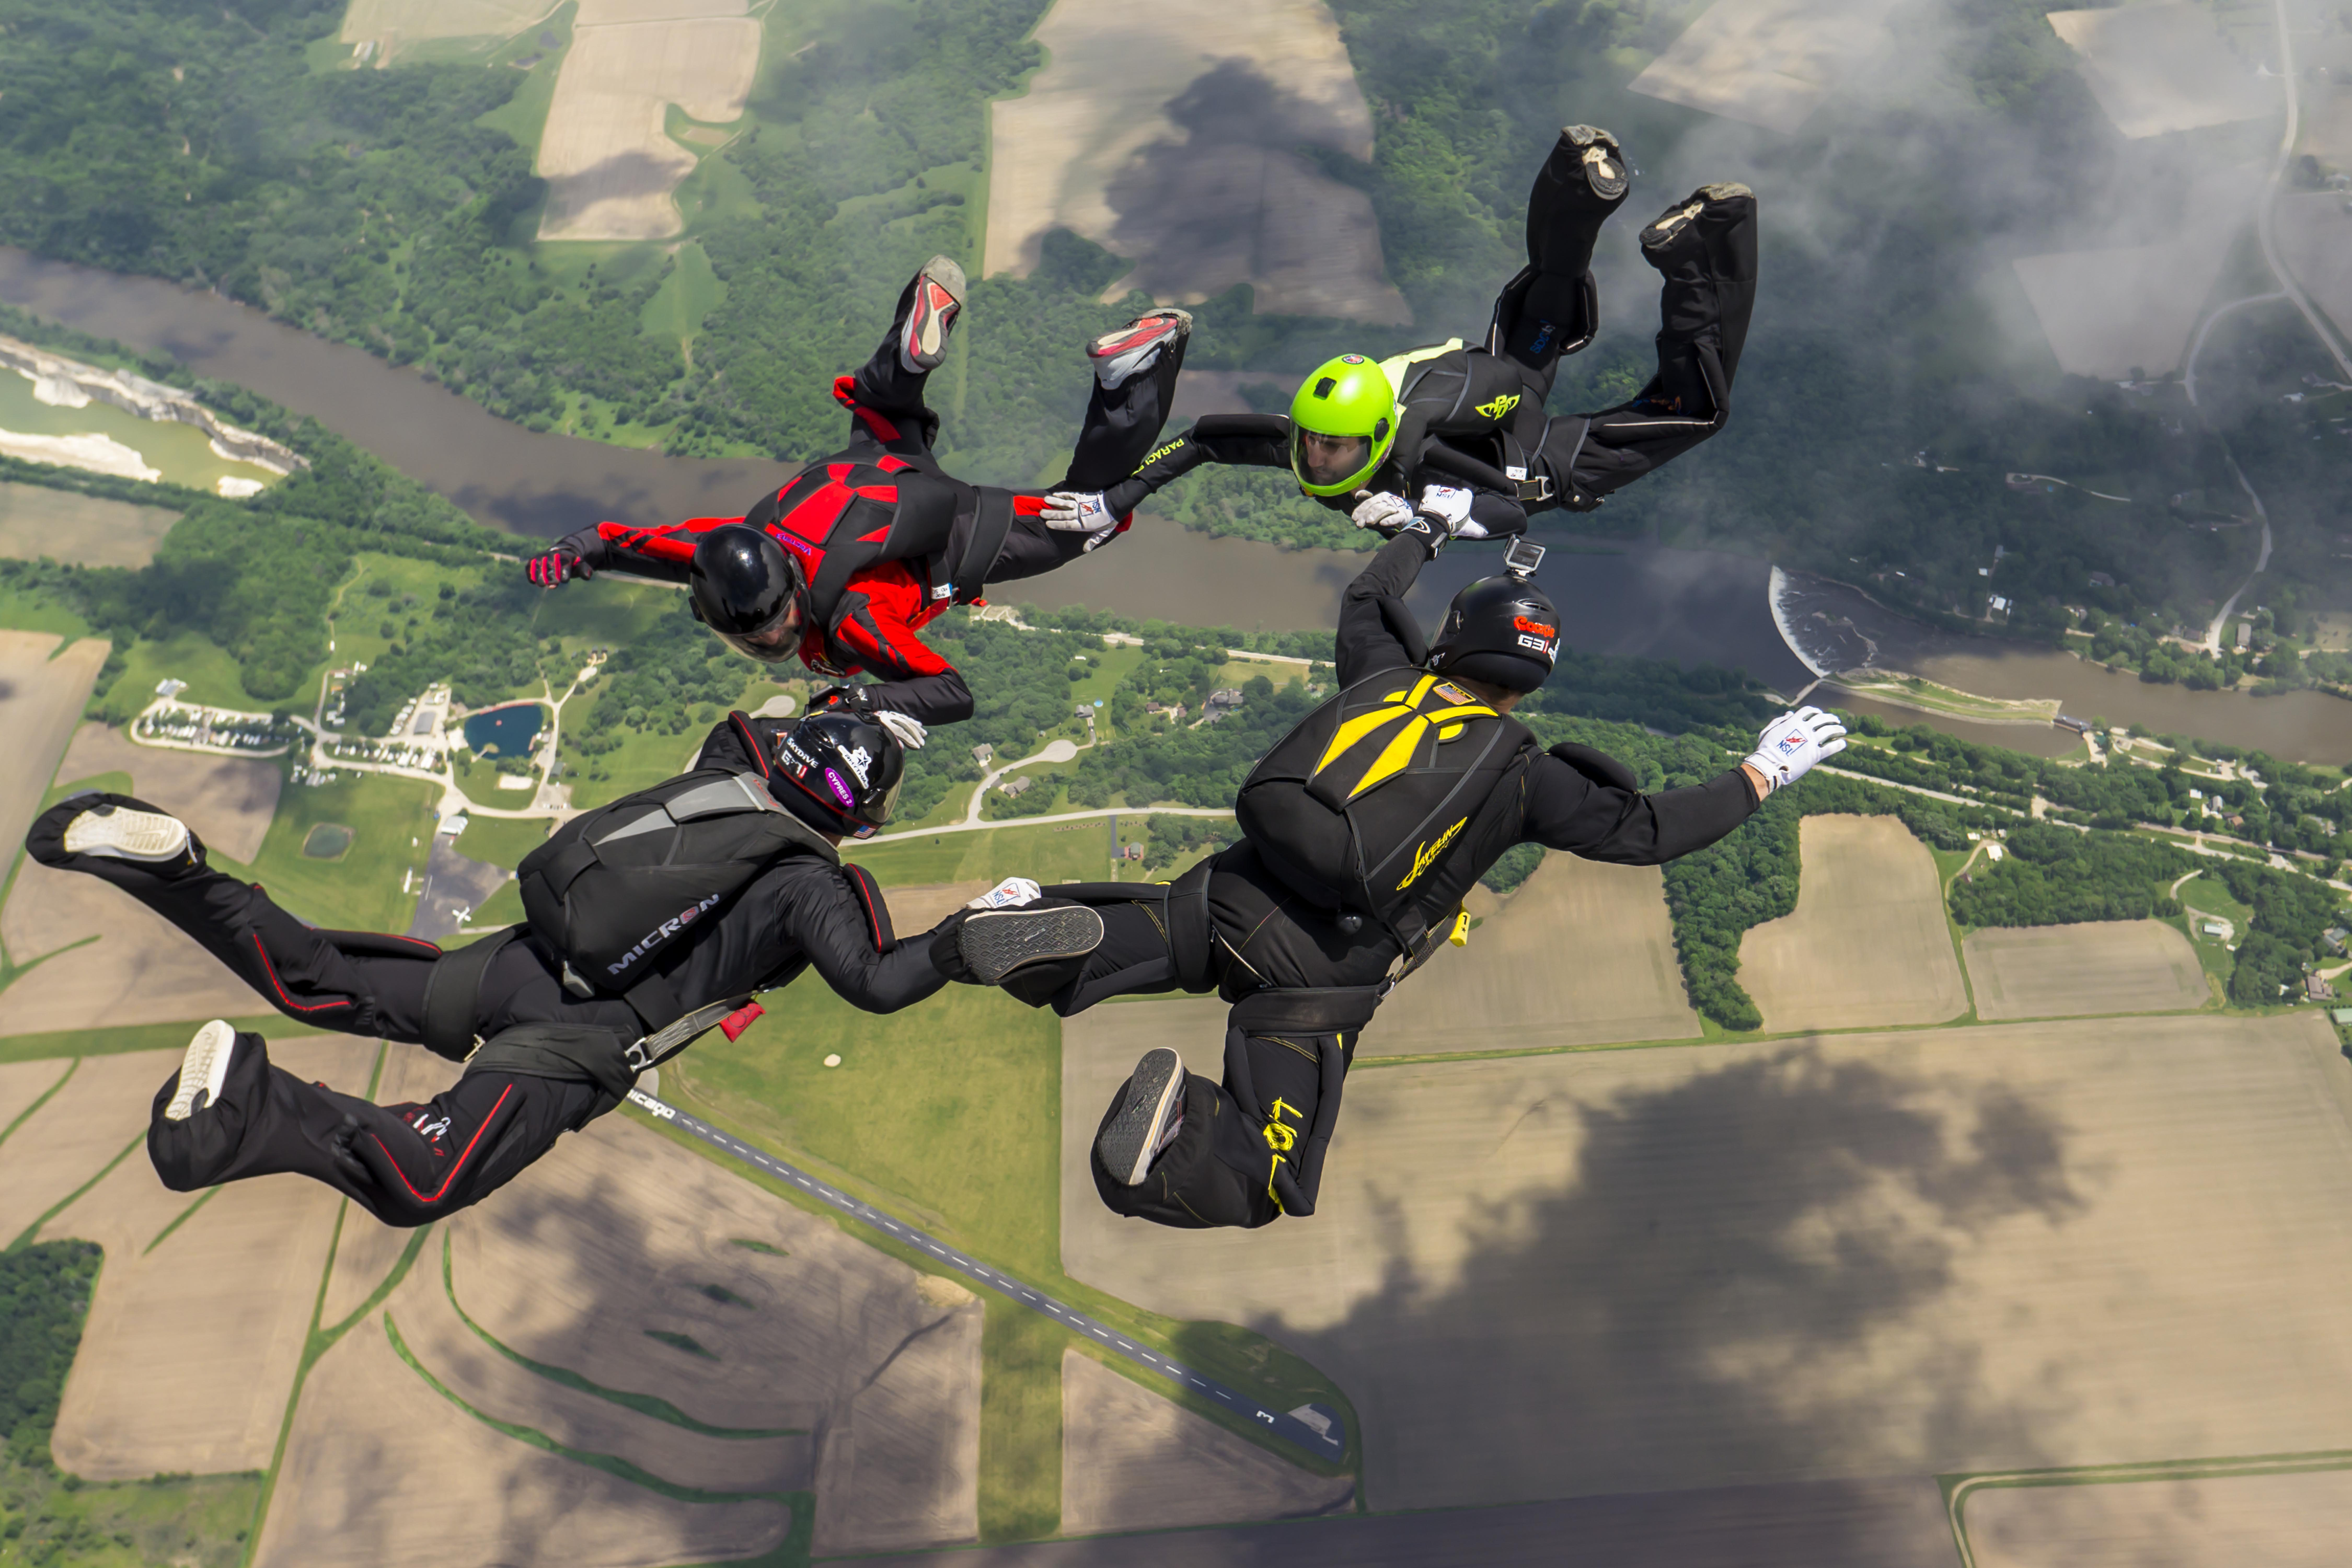 Skydive Chicago jumpers